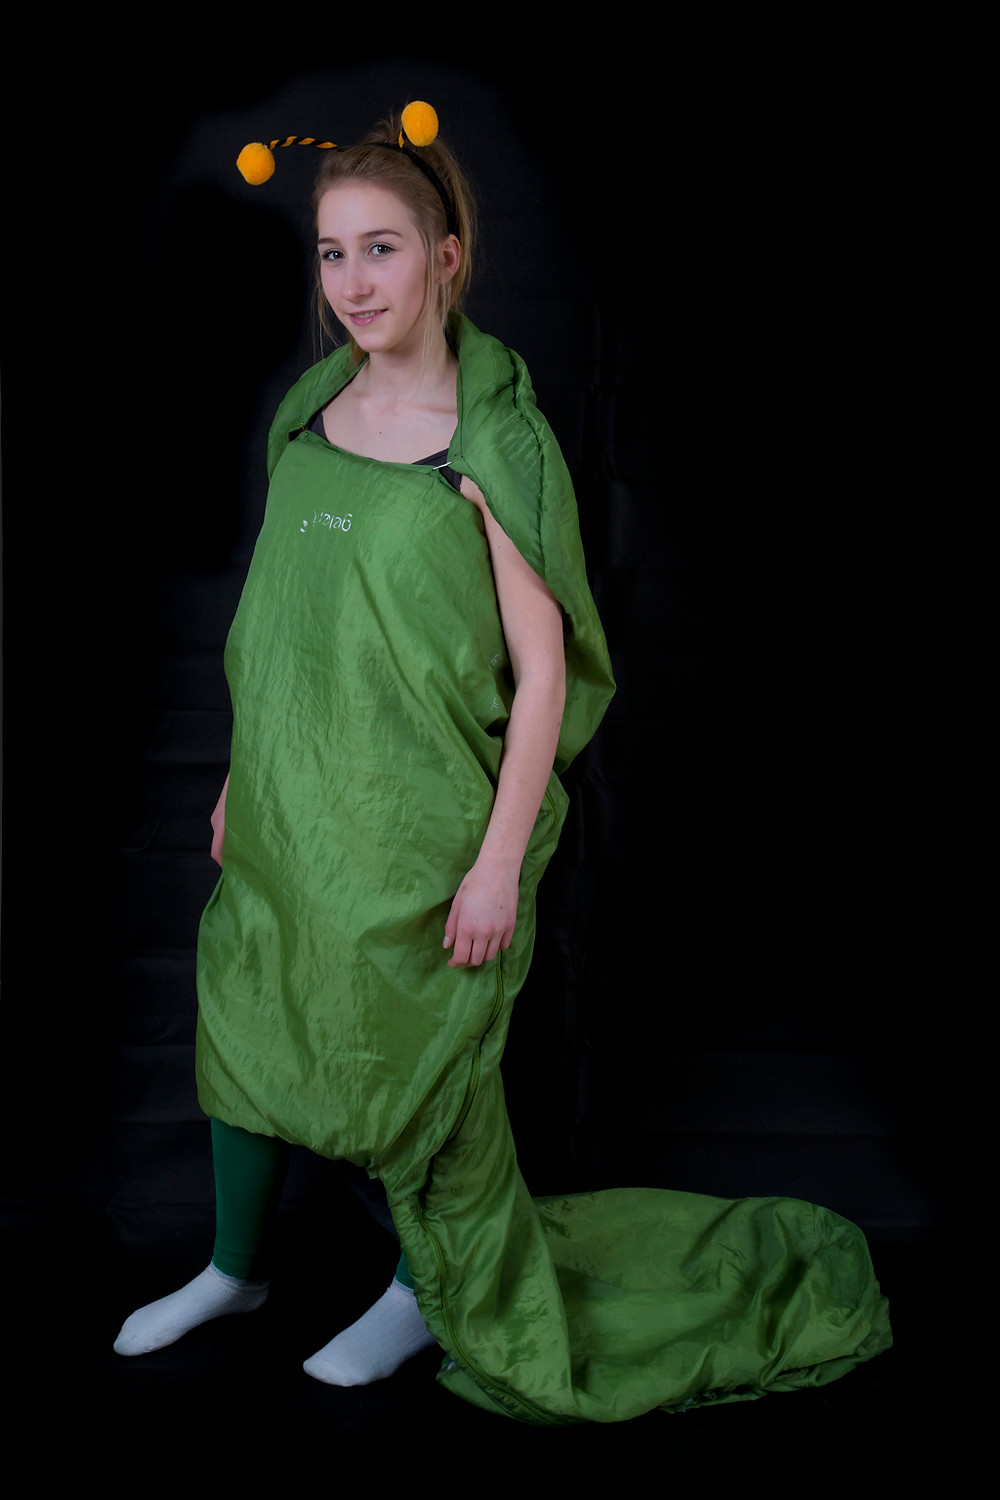 Anya Wagstaff as The Caterpillar